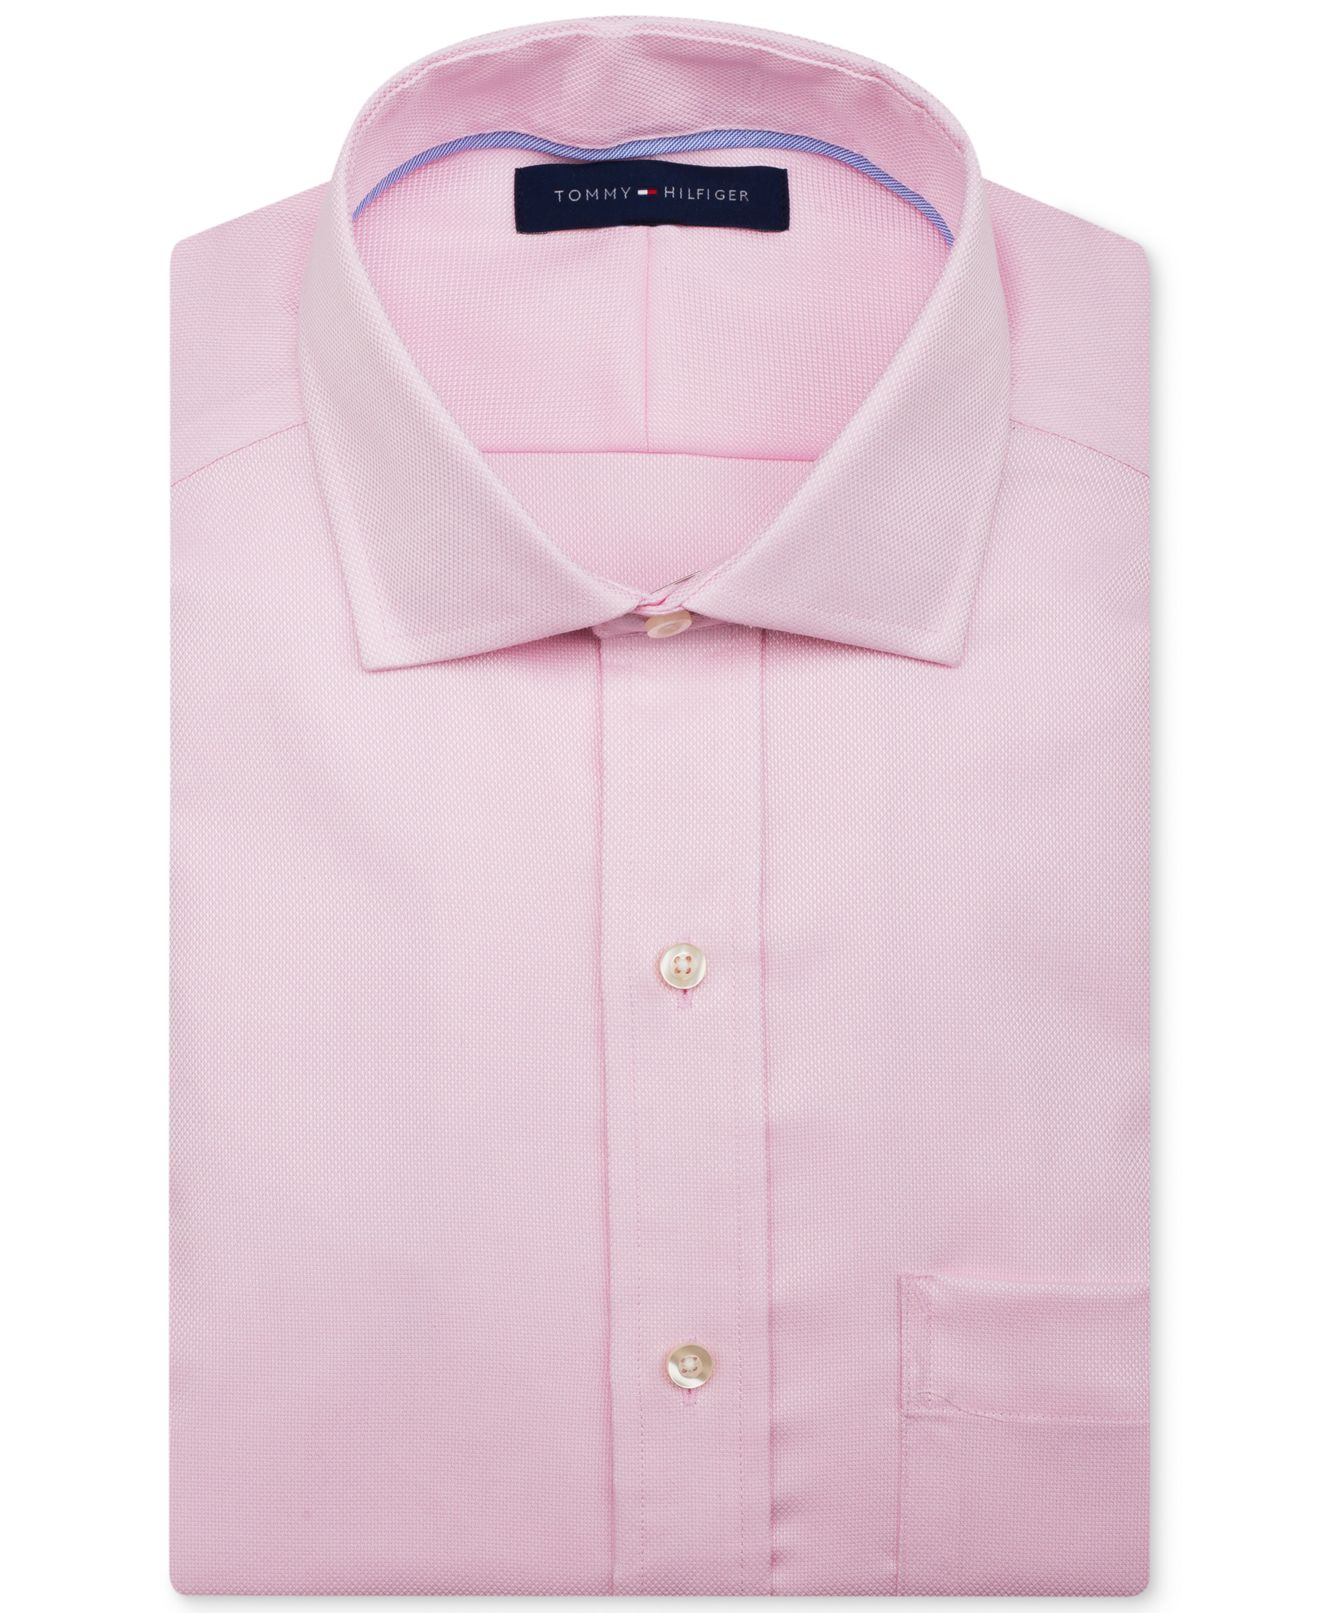 Mens Hot Pink Dress Shirt